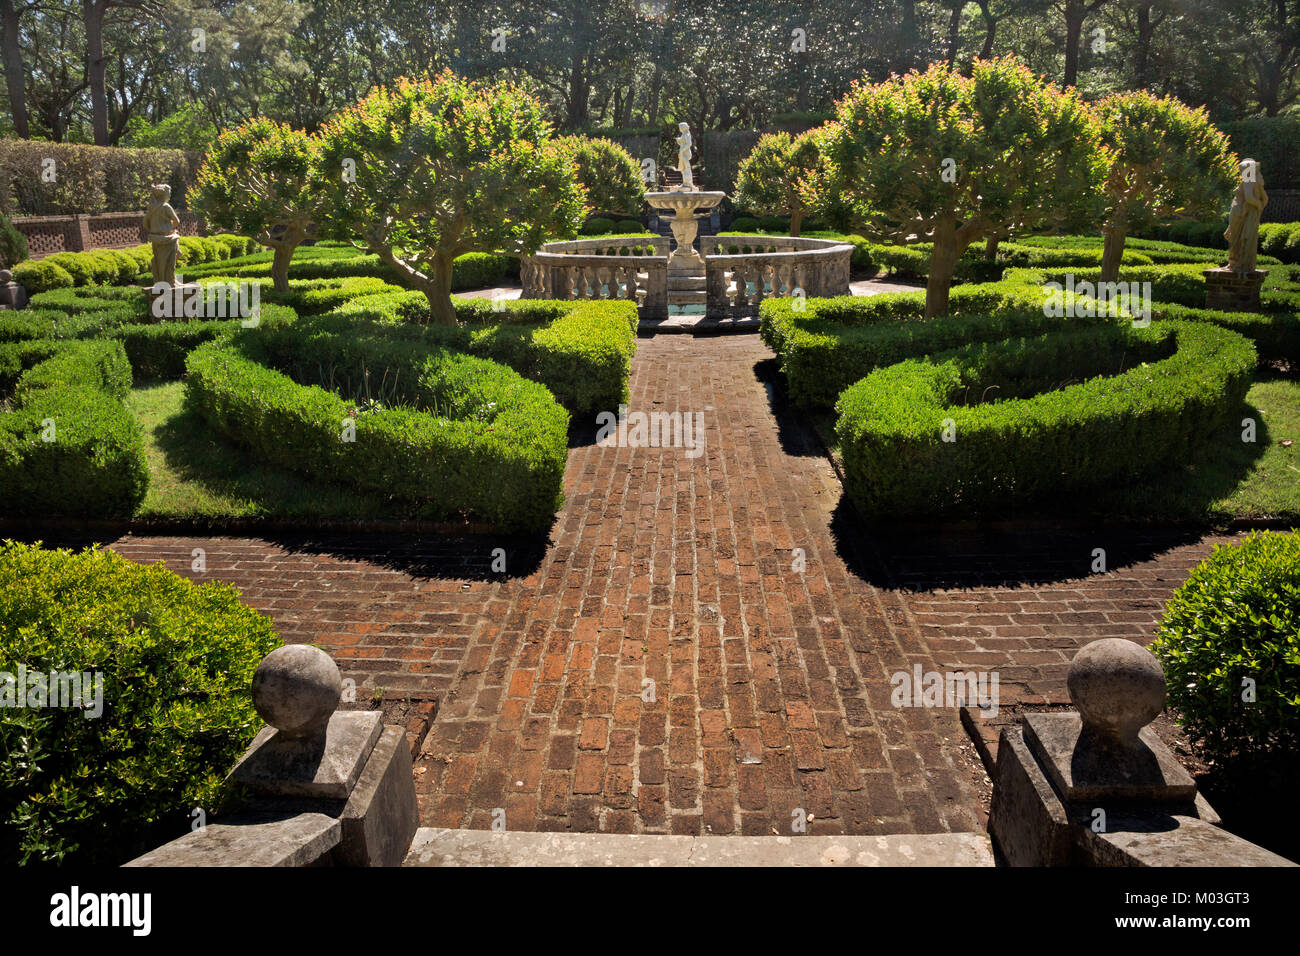 NC01351-00...NORTH CAROLINA -Statue in the Sunken Garden section of ...